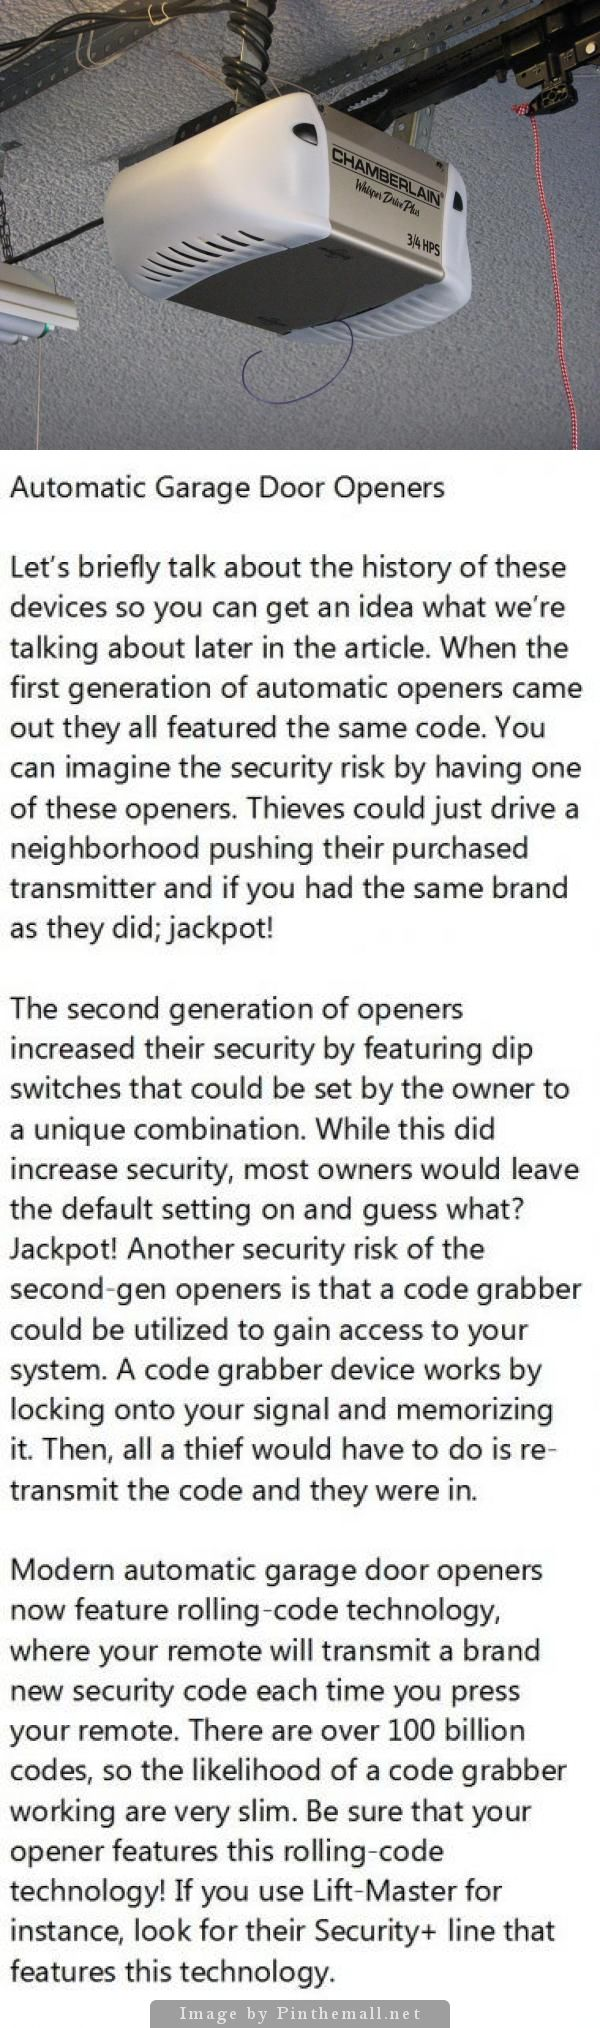 Top 10 Garage Door Security Tips To Prevent Break Ins Garage Doors Garage Door Opener Security Door